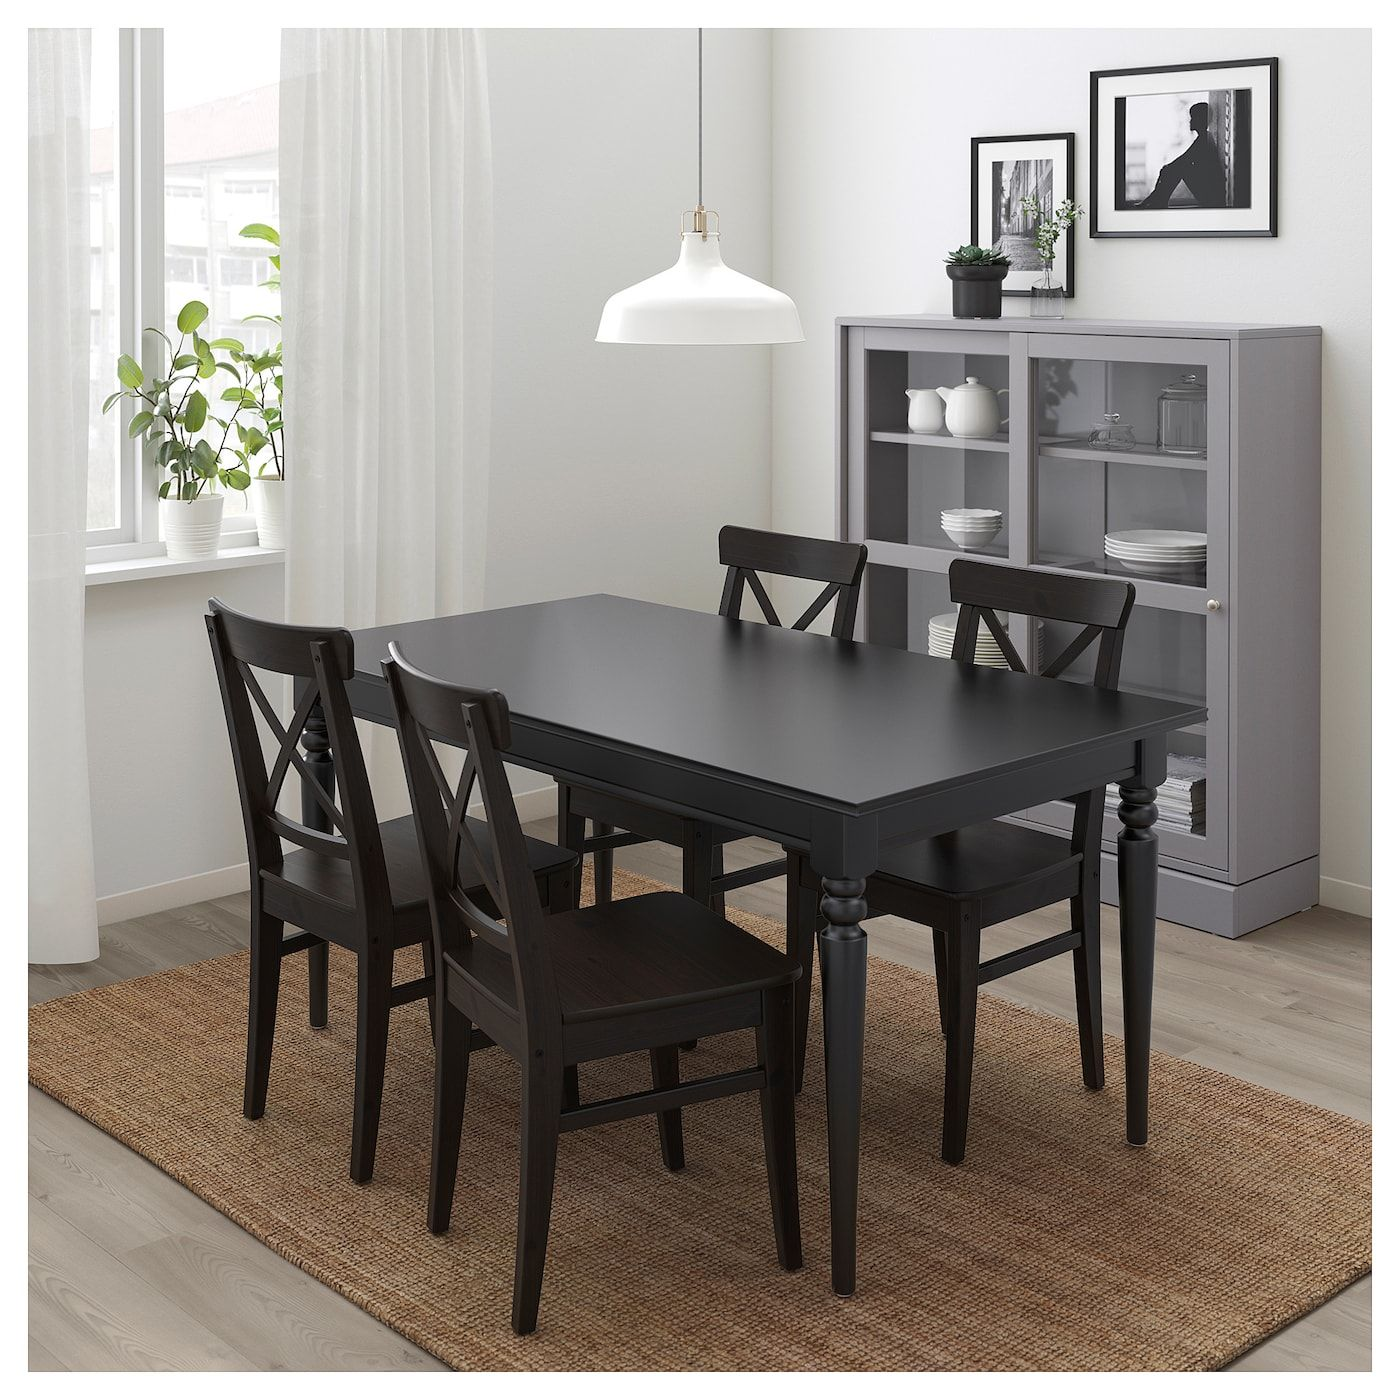 Ingatorp Ingolf Table And 4 Chairs Black Brown Black Ikea In 2021 Black Dining Room Sets Modern Dining Room Tables Modern Dining Room